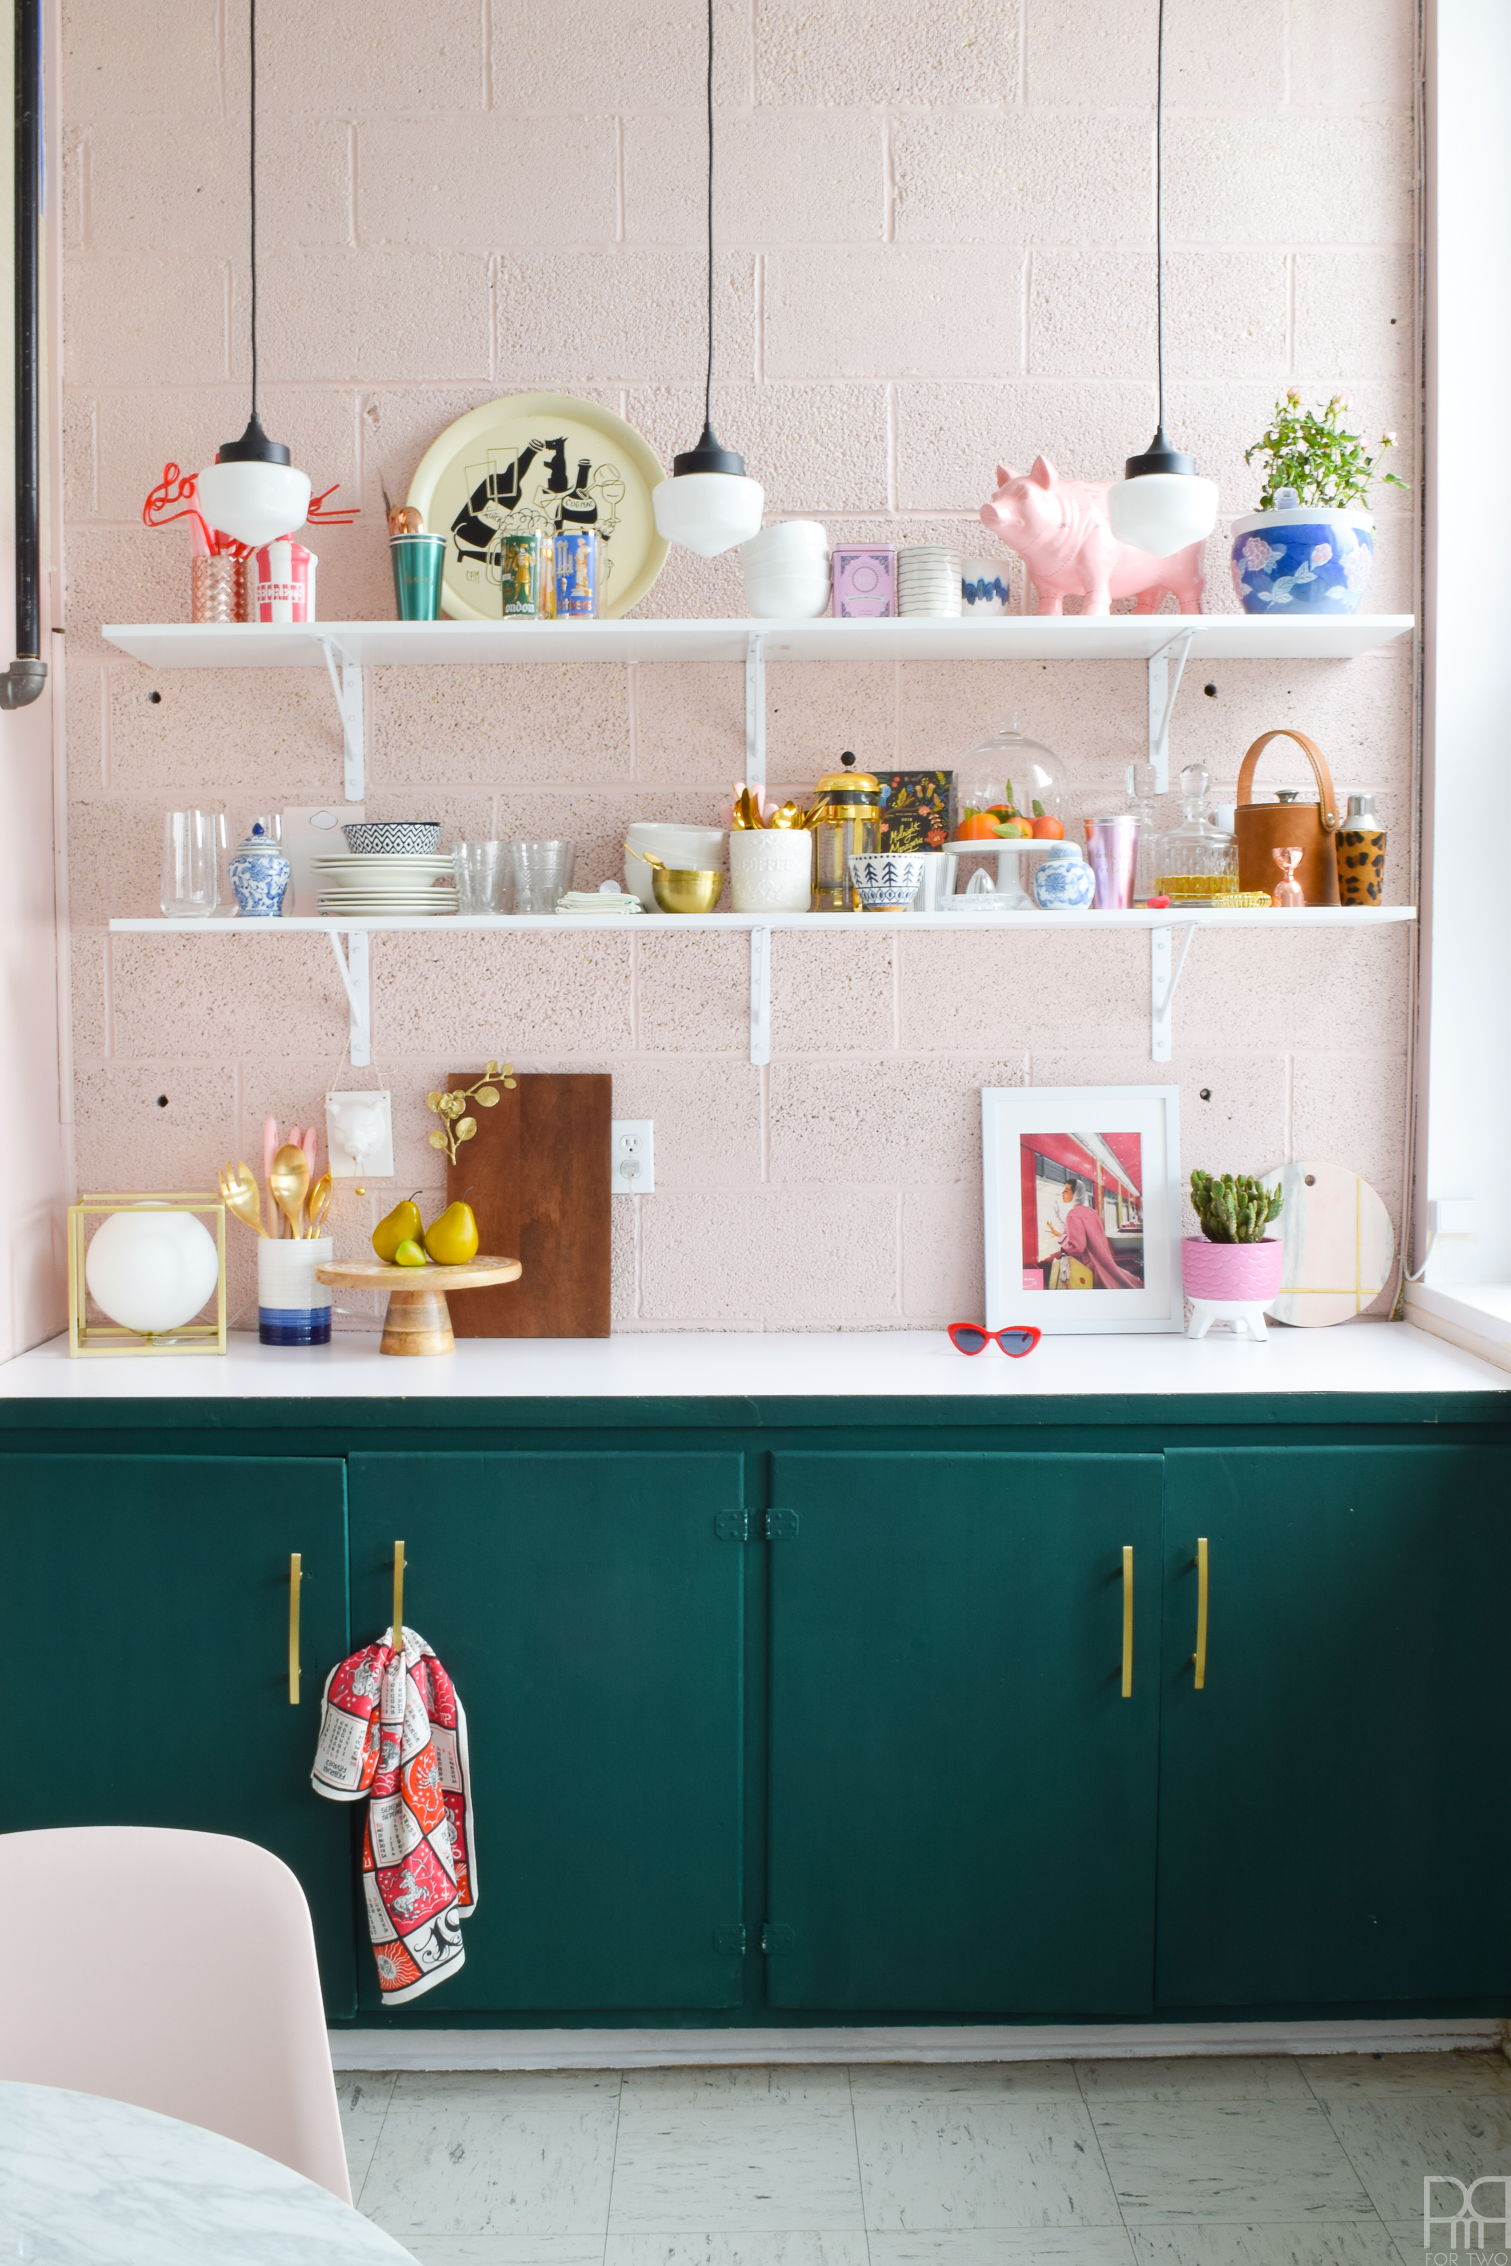 The eclectic & bold kitchen makeover to end all rental kitchen makeovers. Come see how we transformed this space using paint and well curated accessories. FAT Paint's Cascadia green & BEHR's Bella Mia truly get to shine in this makeover.